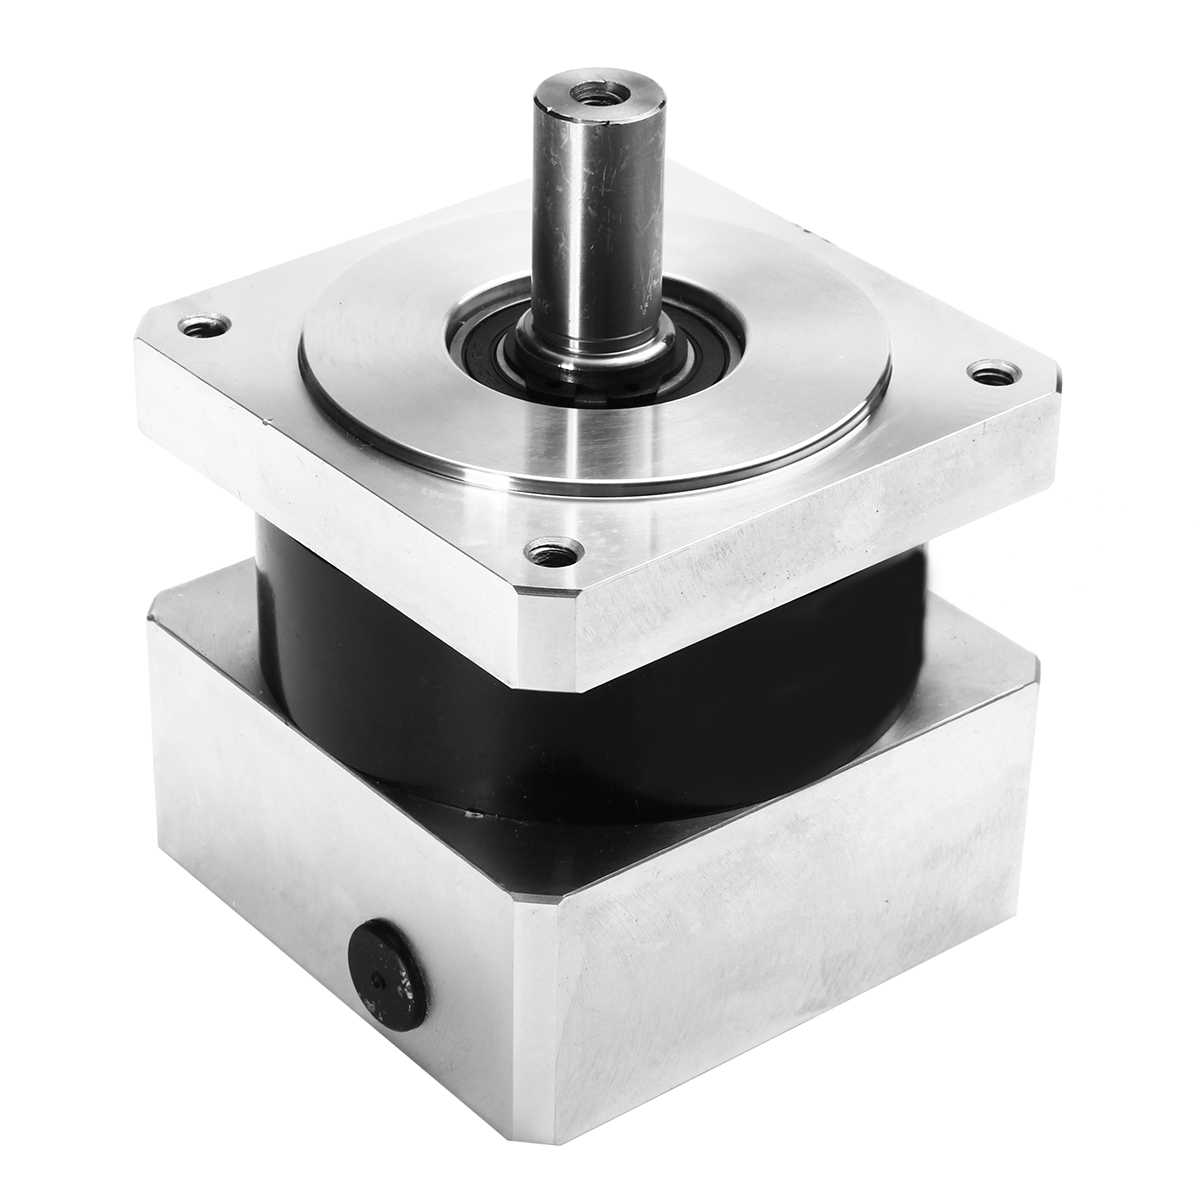 4:1 High Torque Planetary Gear Speed Reducer Ratio Power Transmission Parts Planet Gearbox Speed Reducer Set For Nema34 Motor4:1 High Torque Planetary Gear Speed Reducer Ratio Power Transmission Parts Planet Gearbox Speed Reducer Set For Nema34 Motor